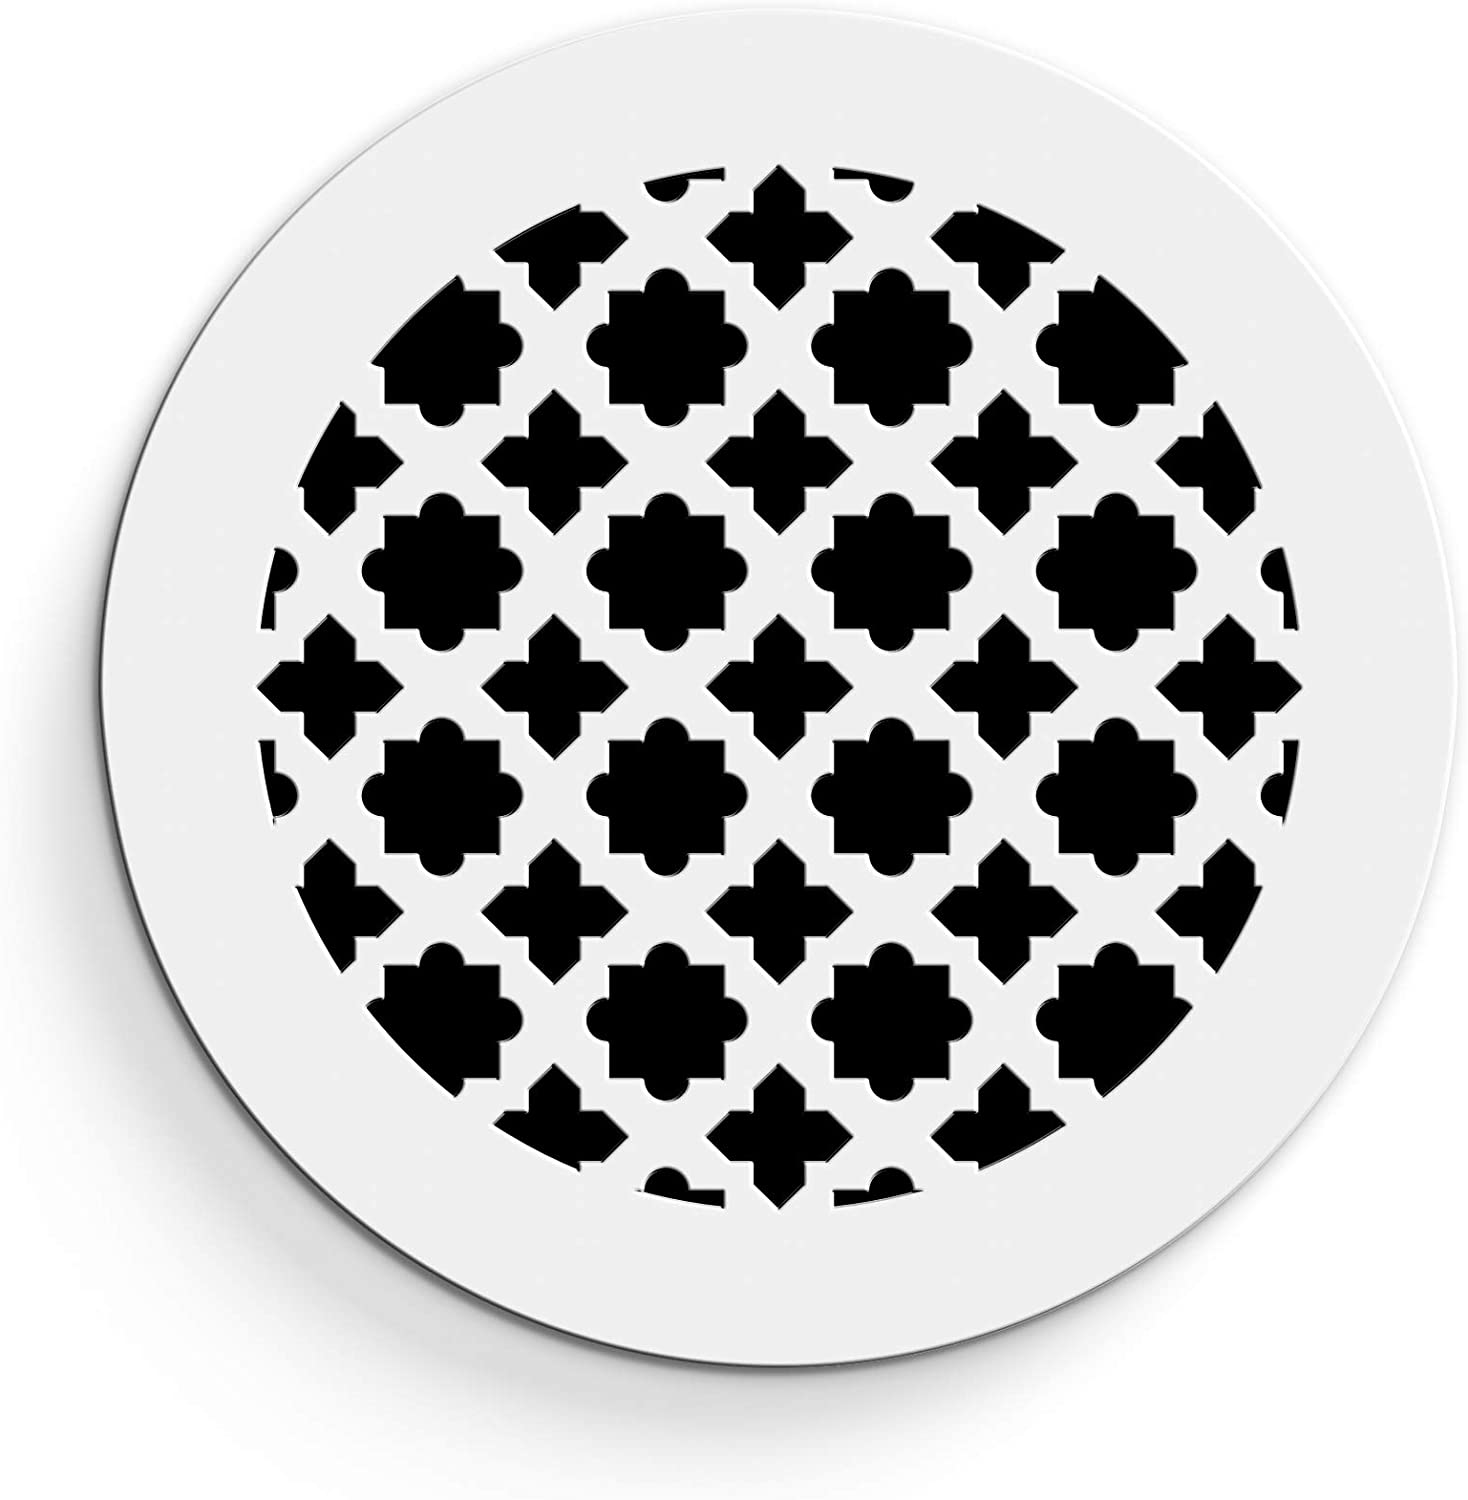 "Saba Air Vent Cover Grille - Acrylic Plexiglass 10"" Round Duct Opening (12"" Round Overall) White Finish Decorative Register Covers for Walls and Ceilings NOT for Floor USE, Venetian (1PCs)"